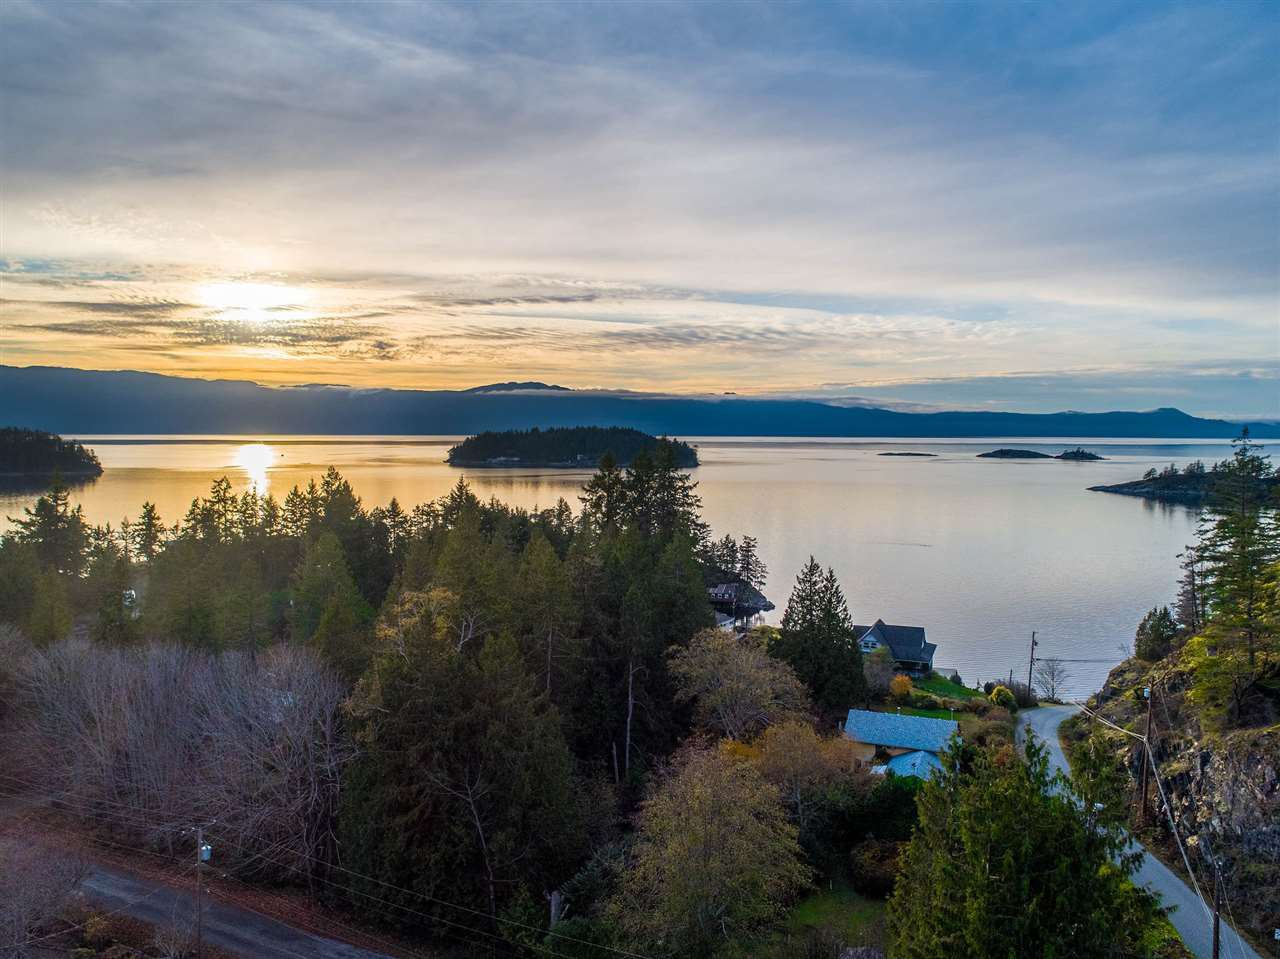 Main Photo: 4242 IRVINES LANDING ROAD in Pender Harbour: Pender Harbour Egmont House for sale (Sunshine Coast)  : MLS®# R2420023